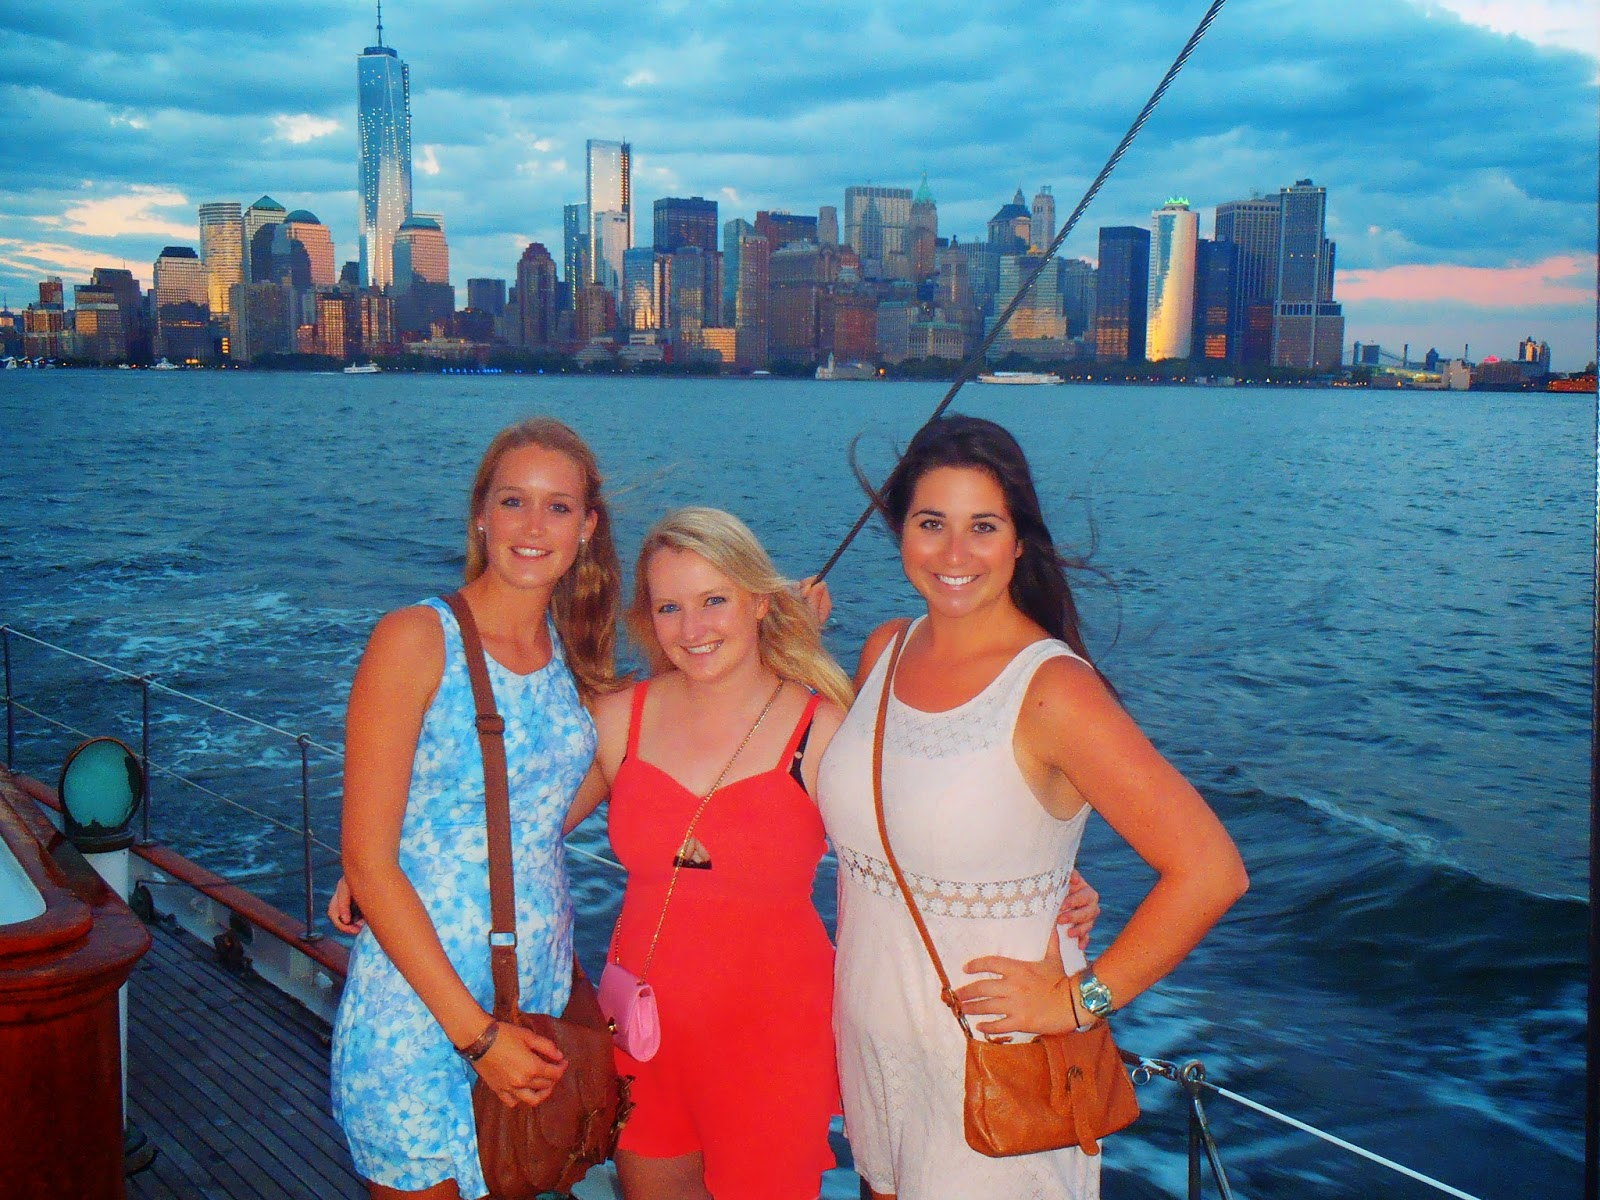 Us girls with New York city in the background